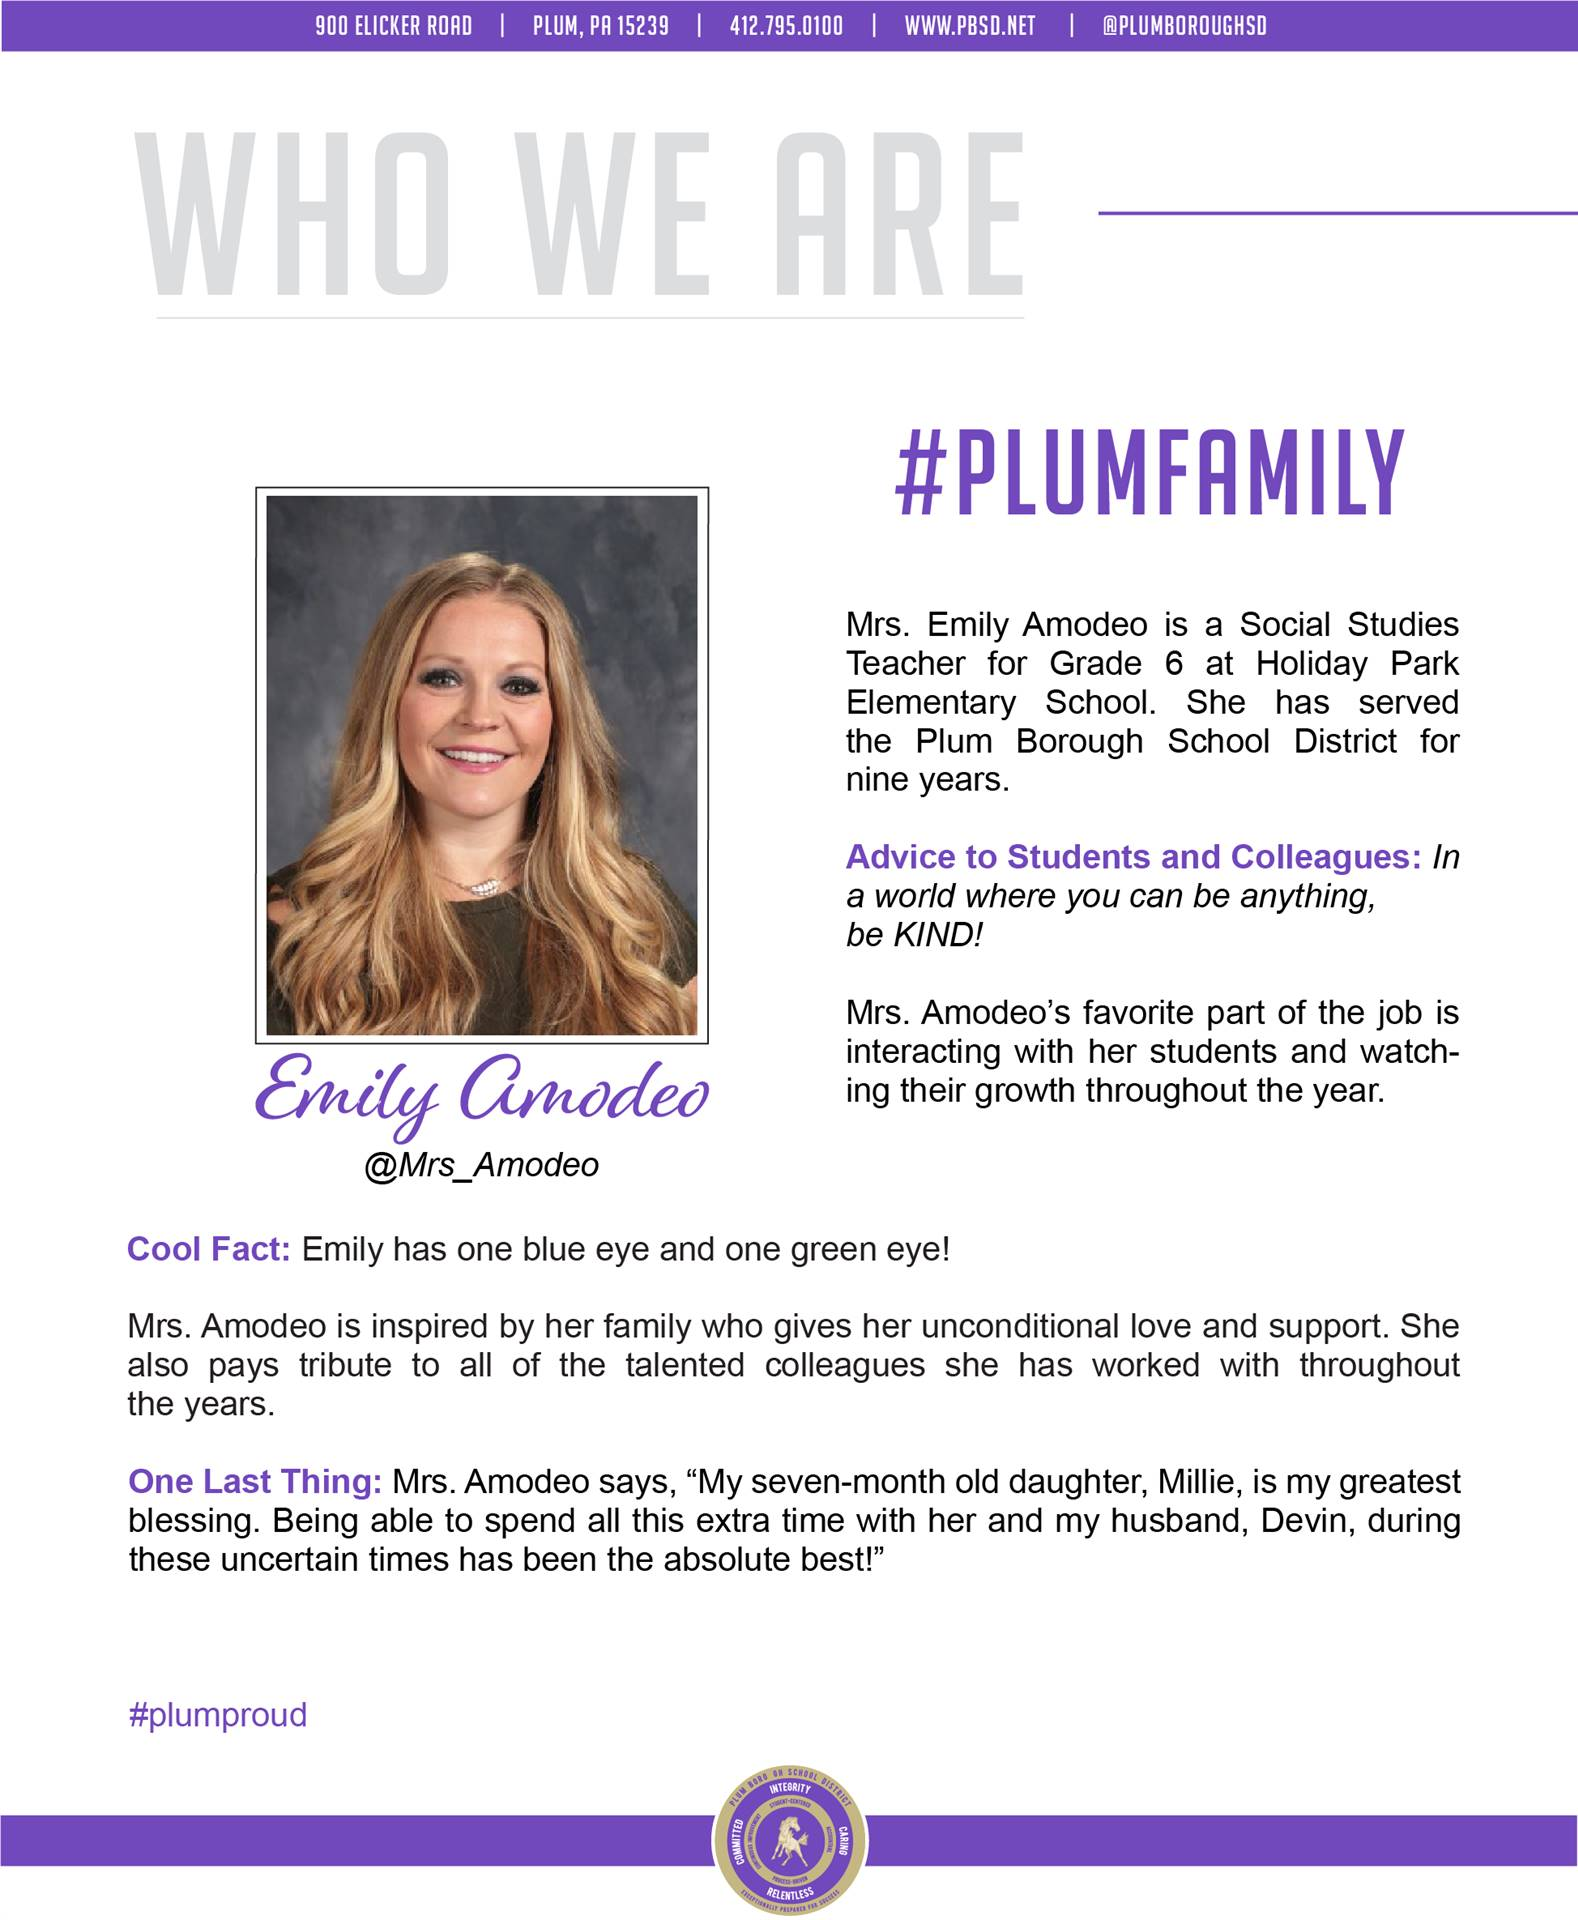 Who We Are Wednesday features Emily Amodeo.